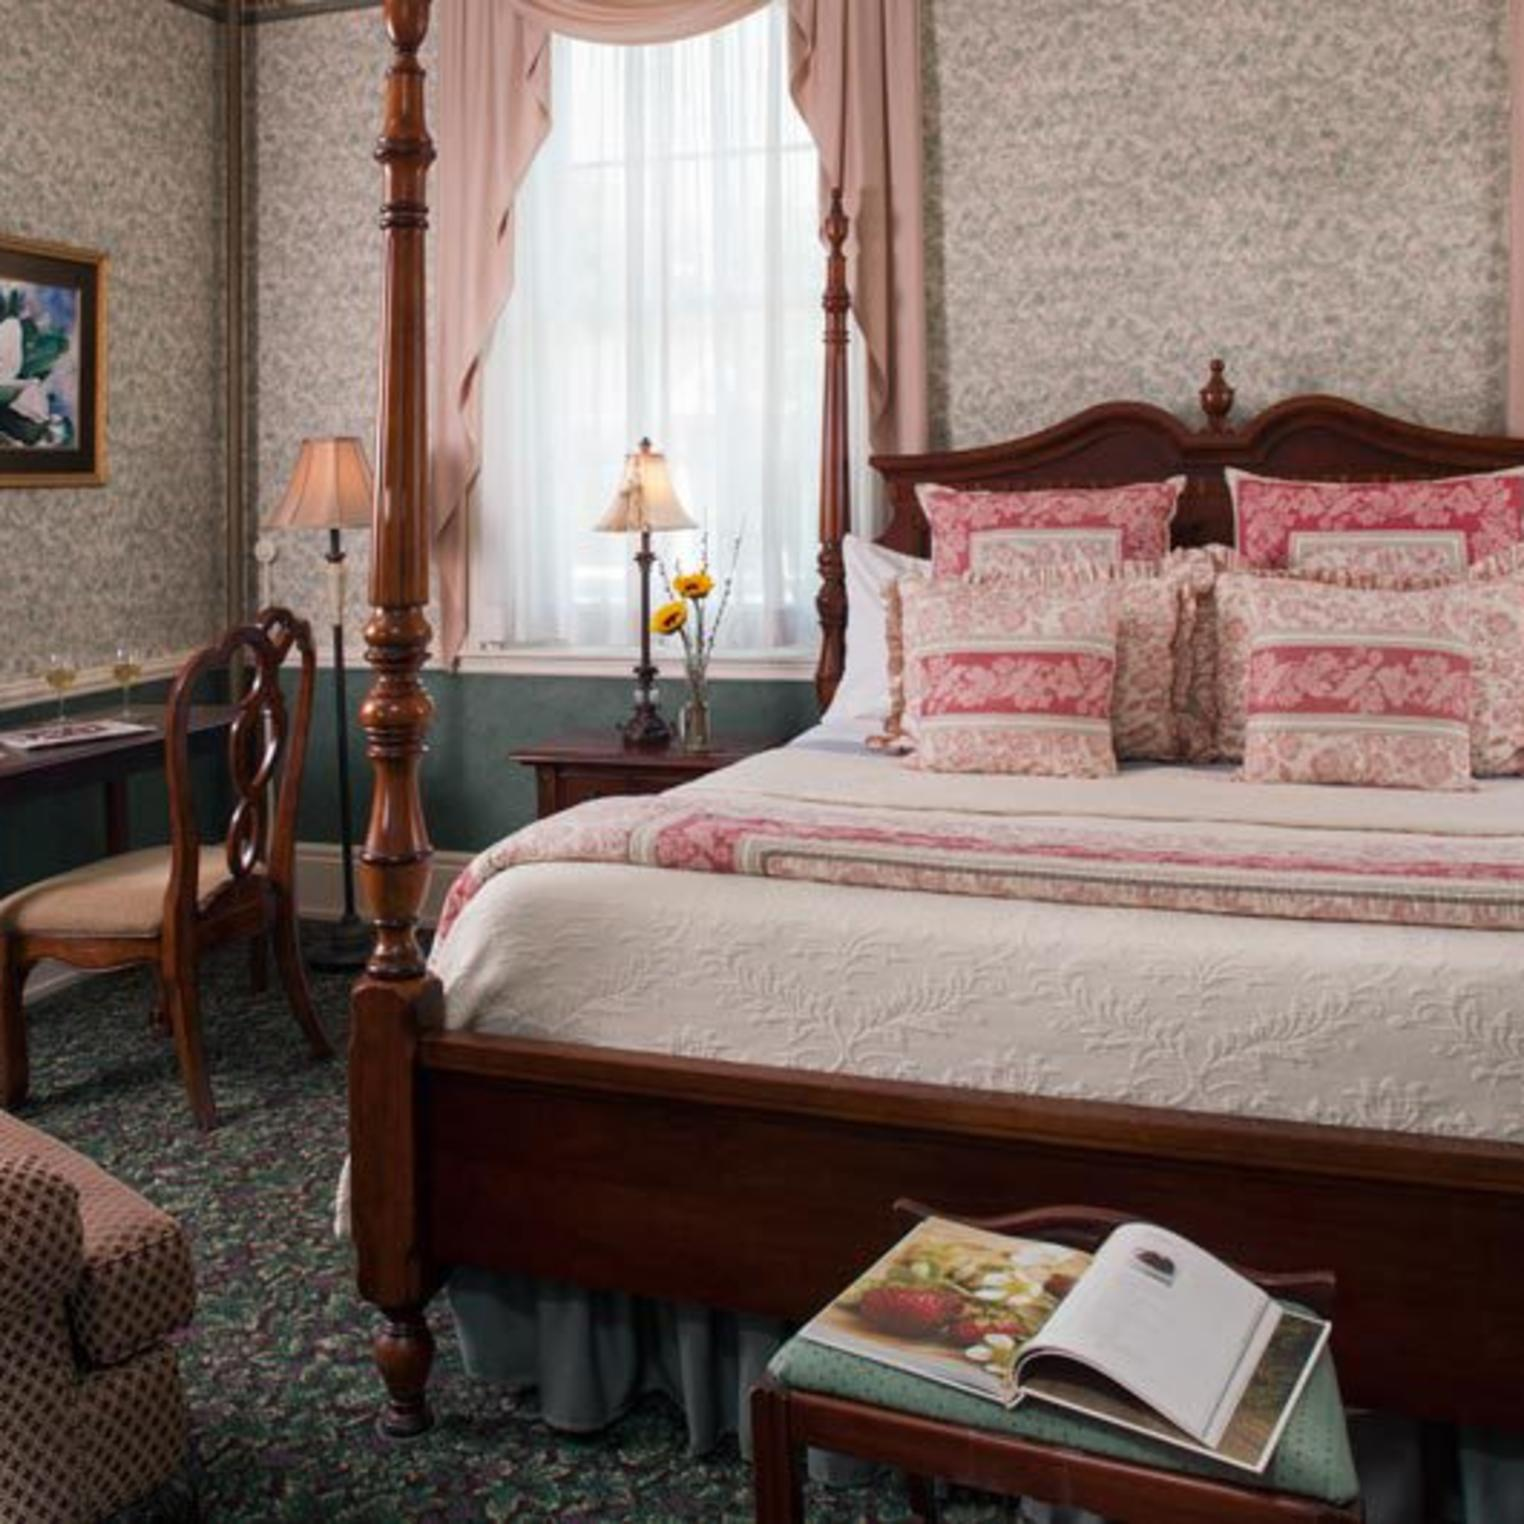 King-Sized Accommodations in the Ewing Room